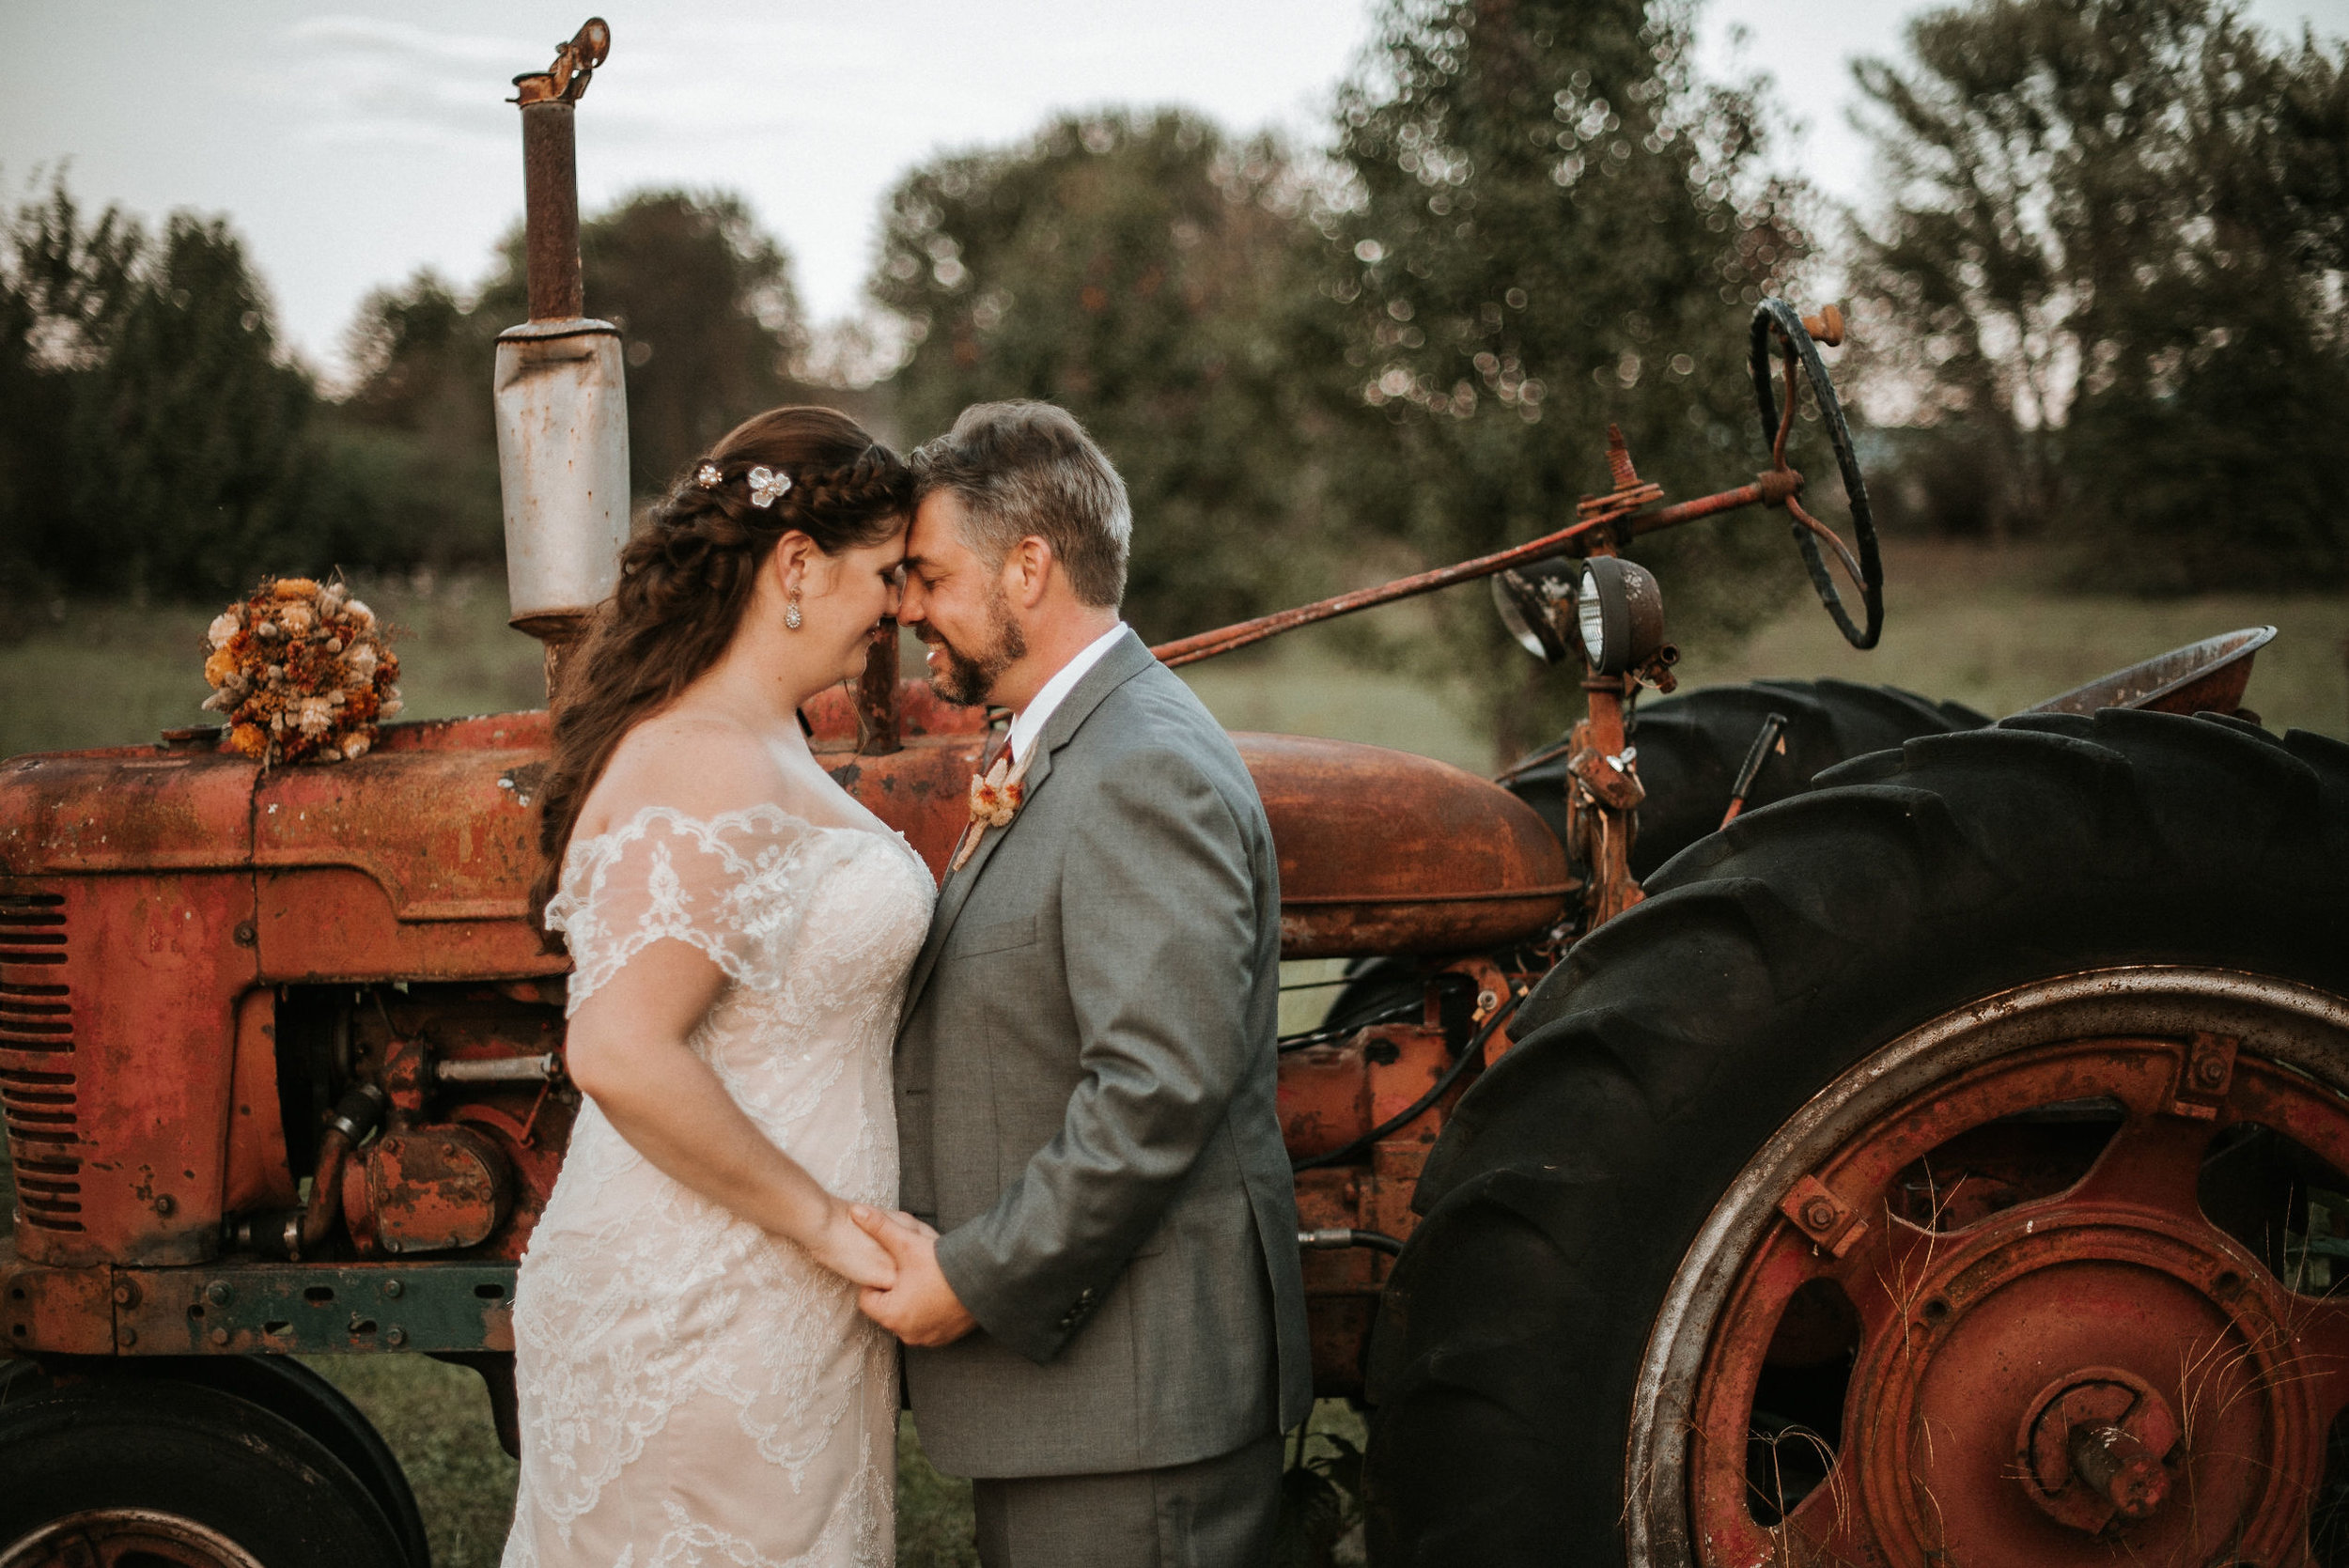 bride and groom holding hands in front of tractor at Khimaira Farm